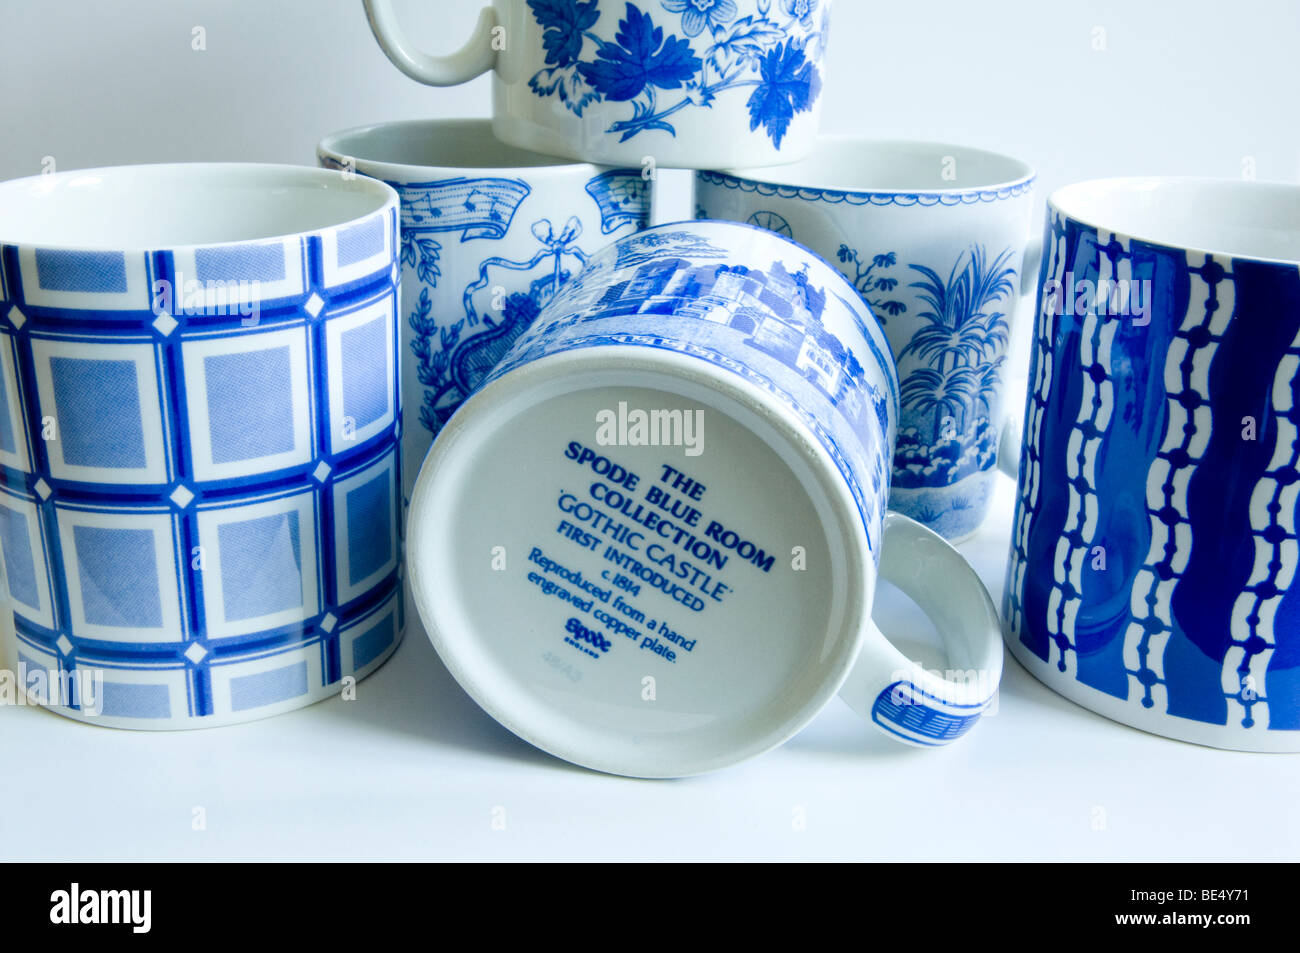 Spode Mugs from the 'Blue Room' collection. - Stock Image